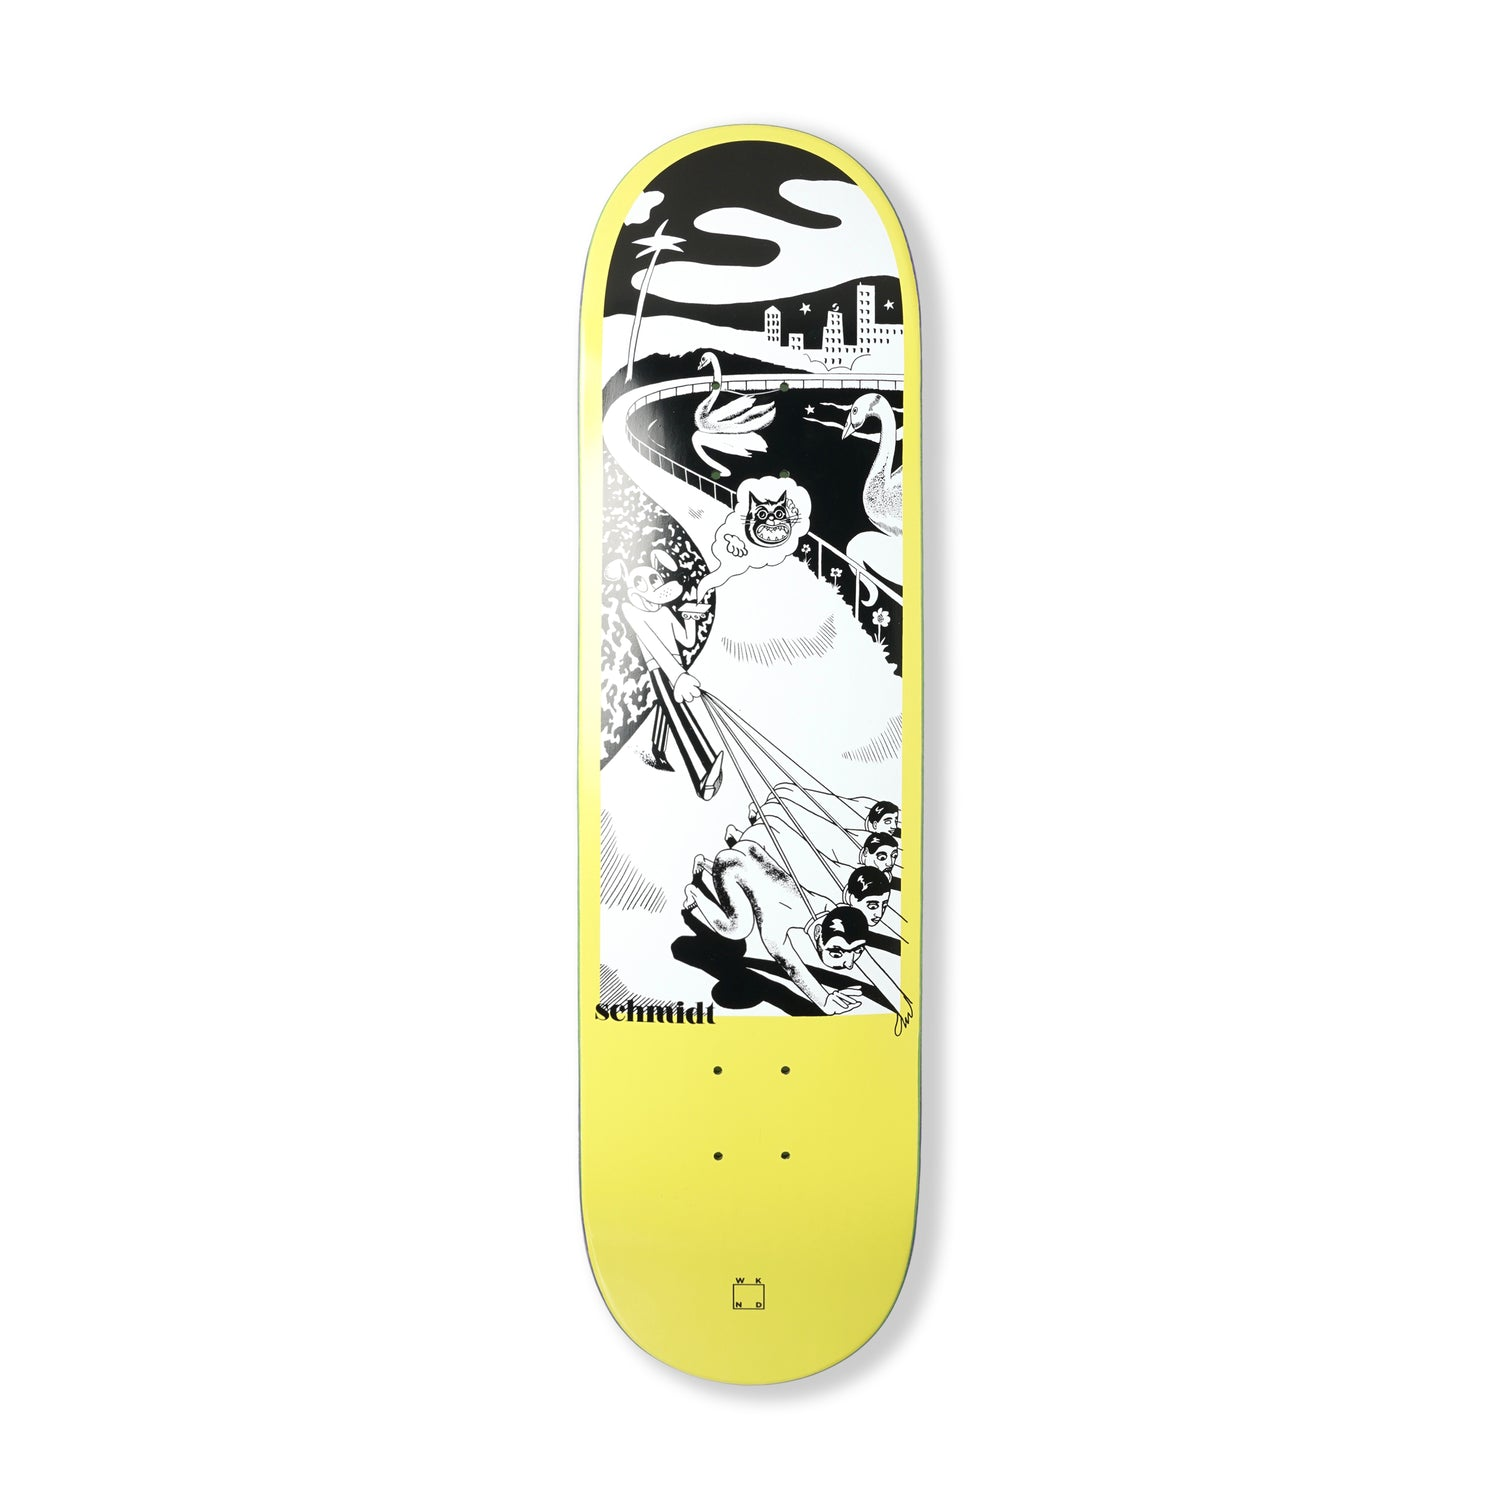 Schmidt 'Dog Walking' Deck